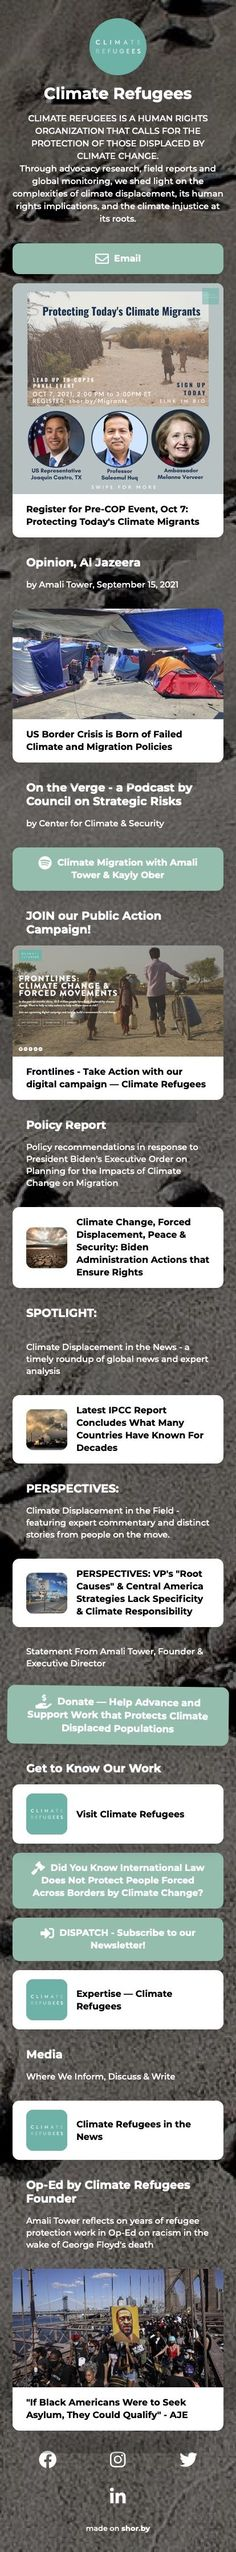 CLIMATE REFUGEES IS A HUMAN RIGHTS ORGANIZATION THAT CALLS FOR THE PROTECTION OF THOSE DISPLACED BY CLIMATE CHANGE. #humanrights #climatechange Human Rights Organizations, Community Organizing, Climate Change, Landing, Human Rights Organisations